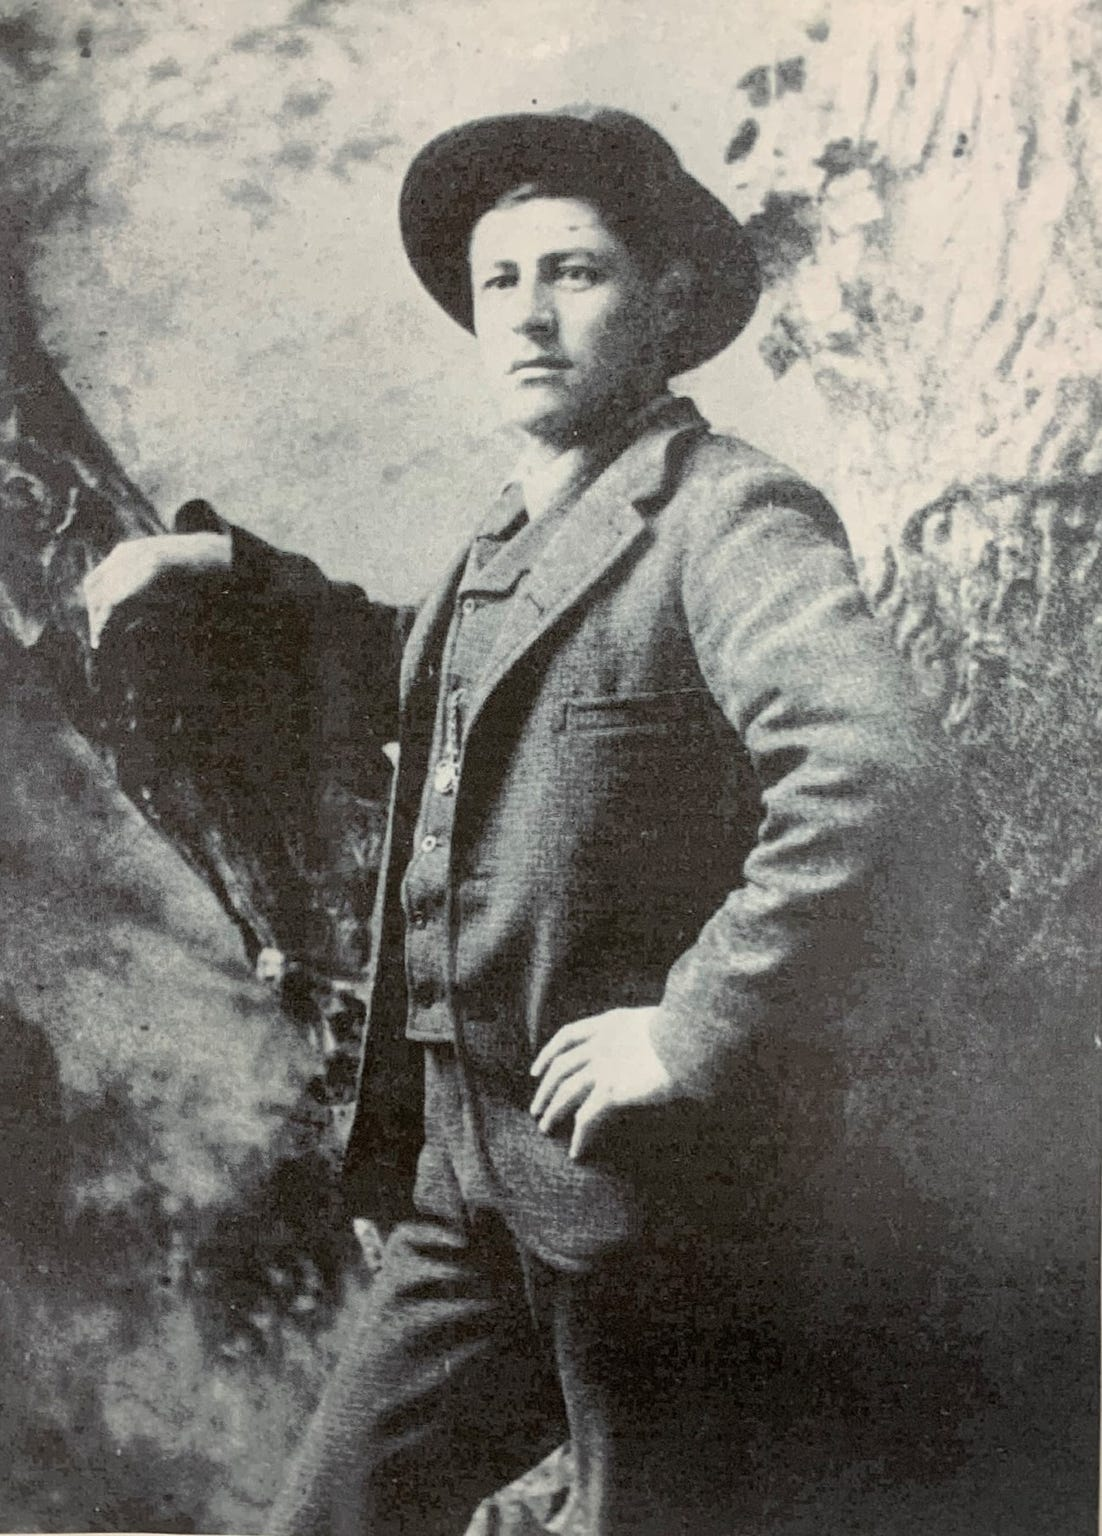 Scout Joe Kipp told Baker they were about to attack the wrong camp, but Baker didn't listen. Kipp suffered immense guilt after the massacre and adopted several Native American survivors.